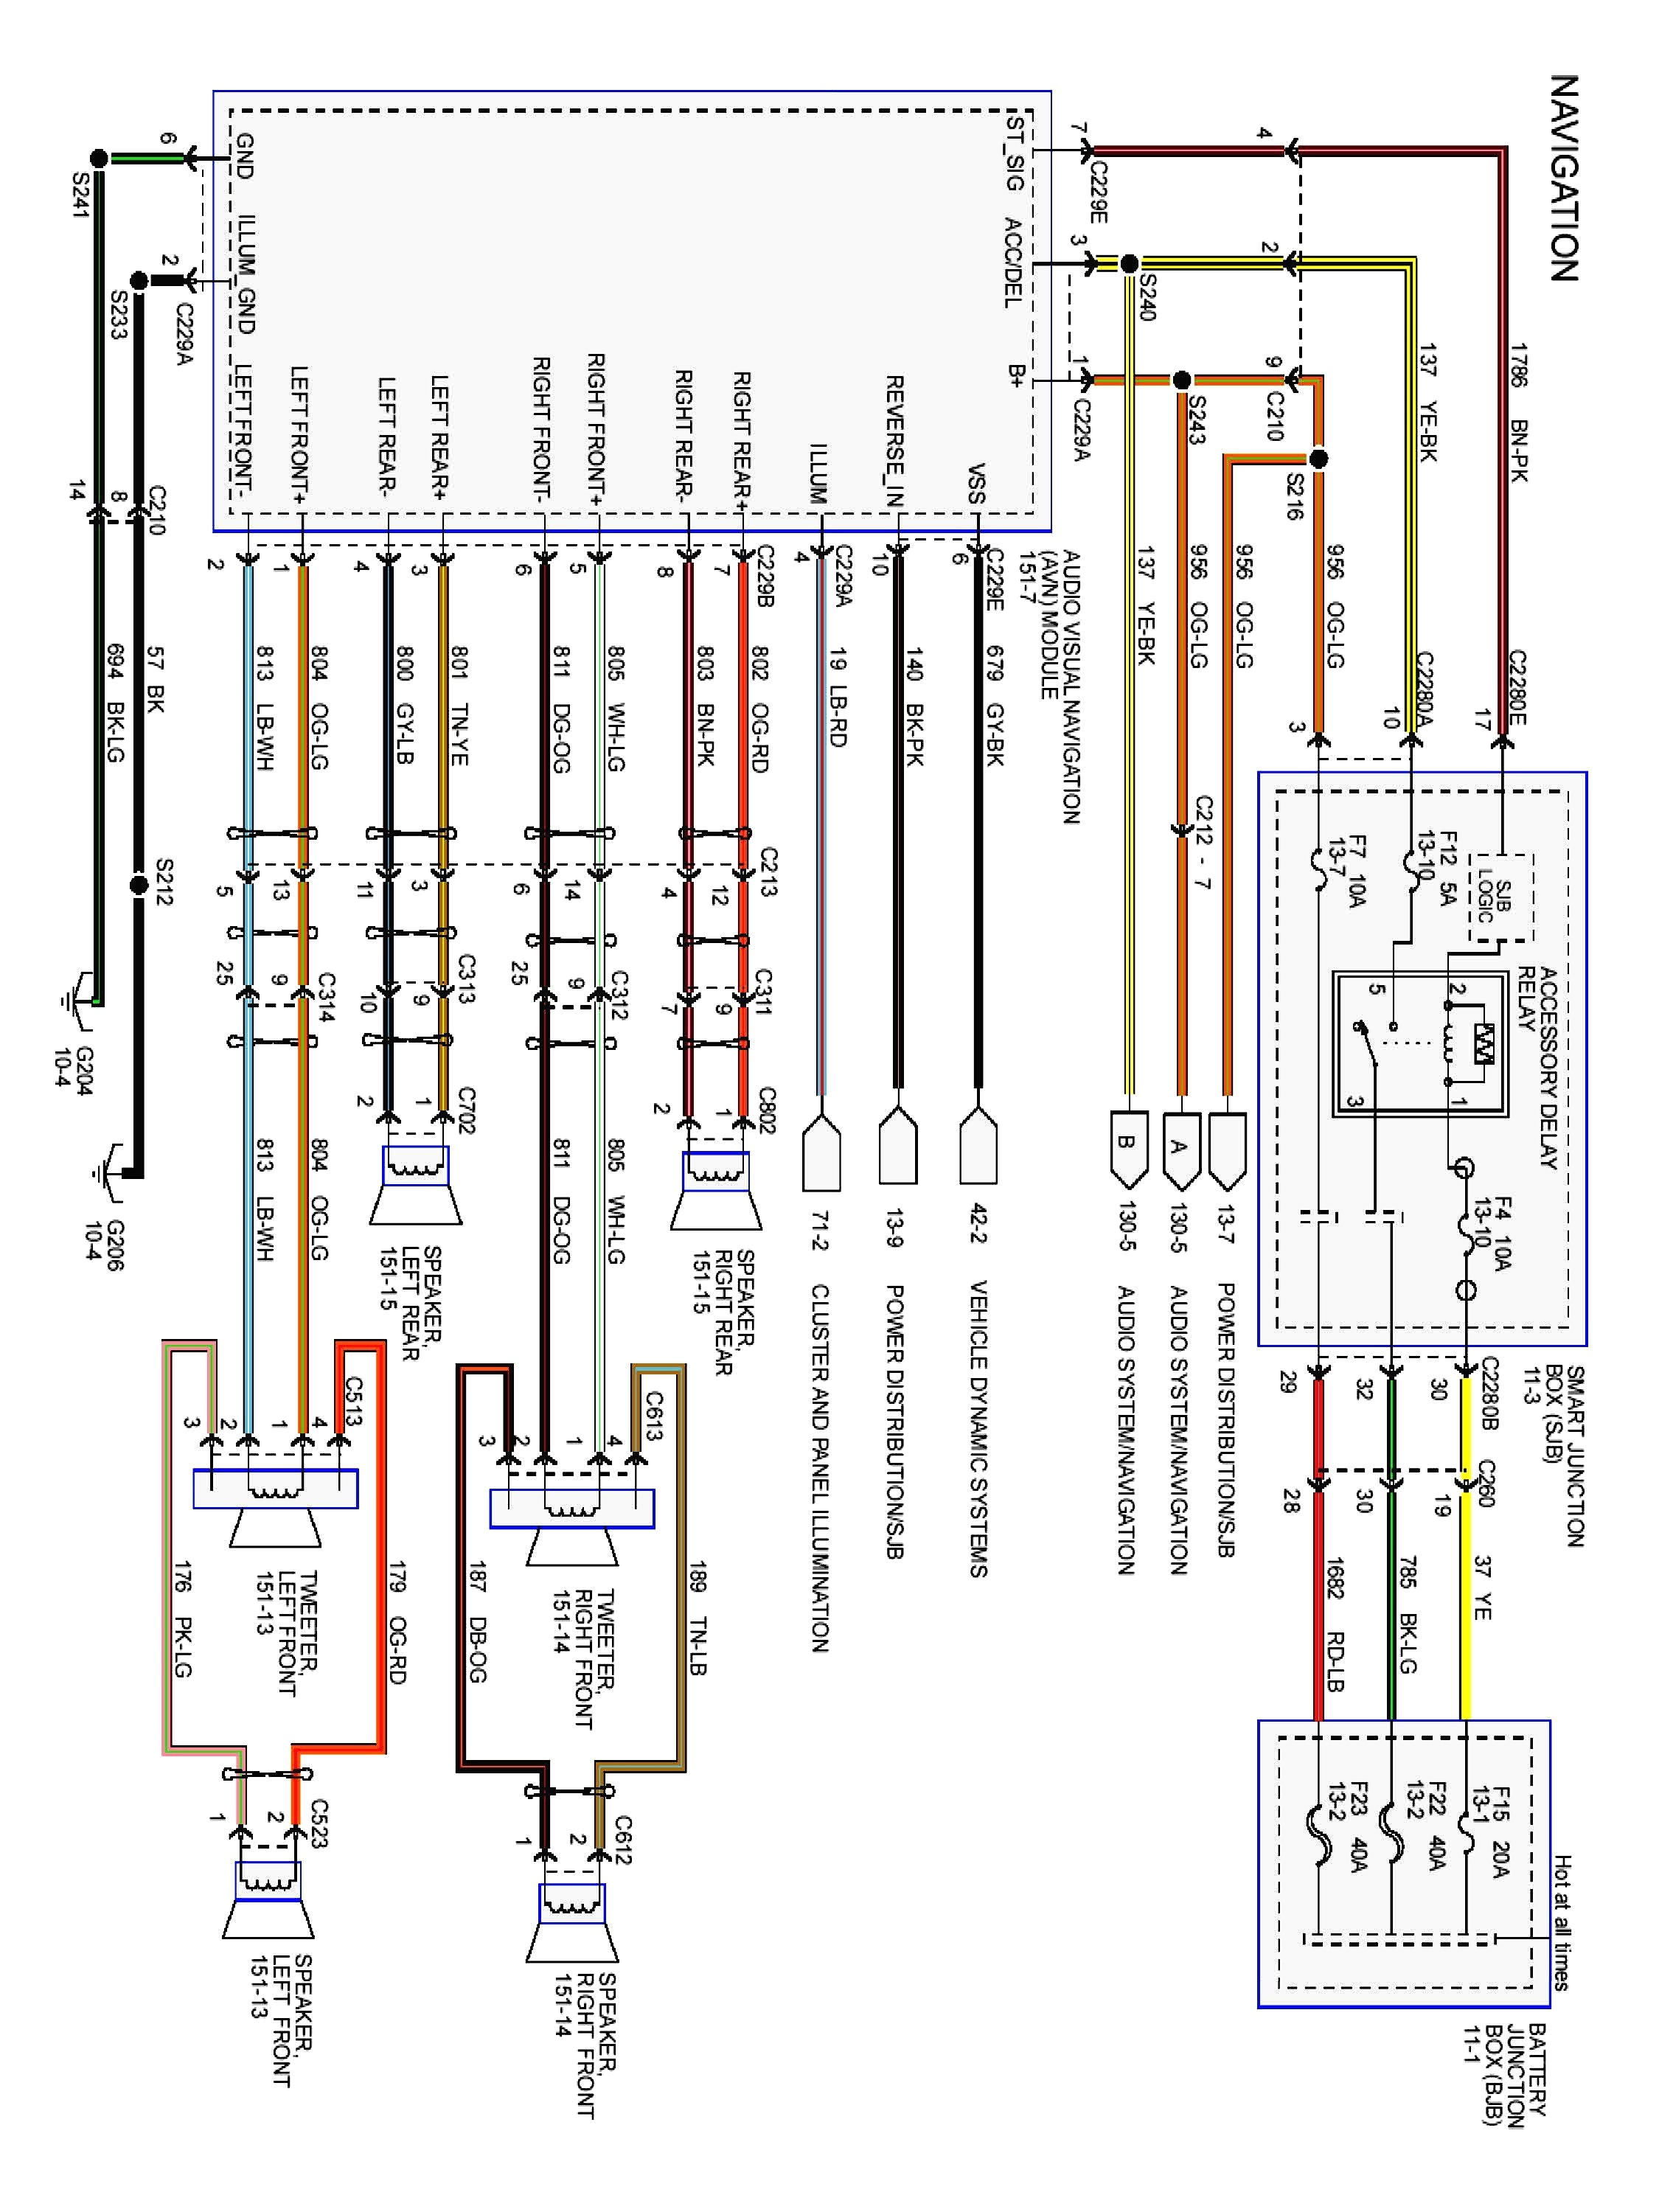 1999 Ford F250 Super Duty Wiring Diagram from wholefoodsonabudget.com